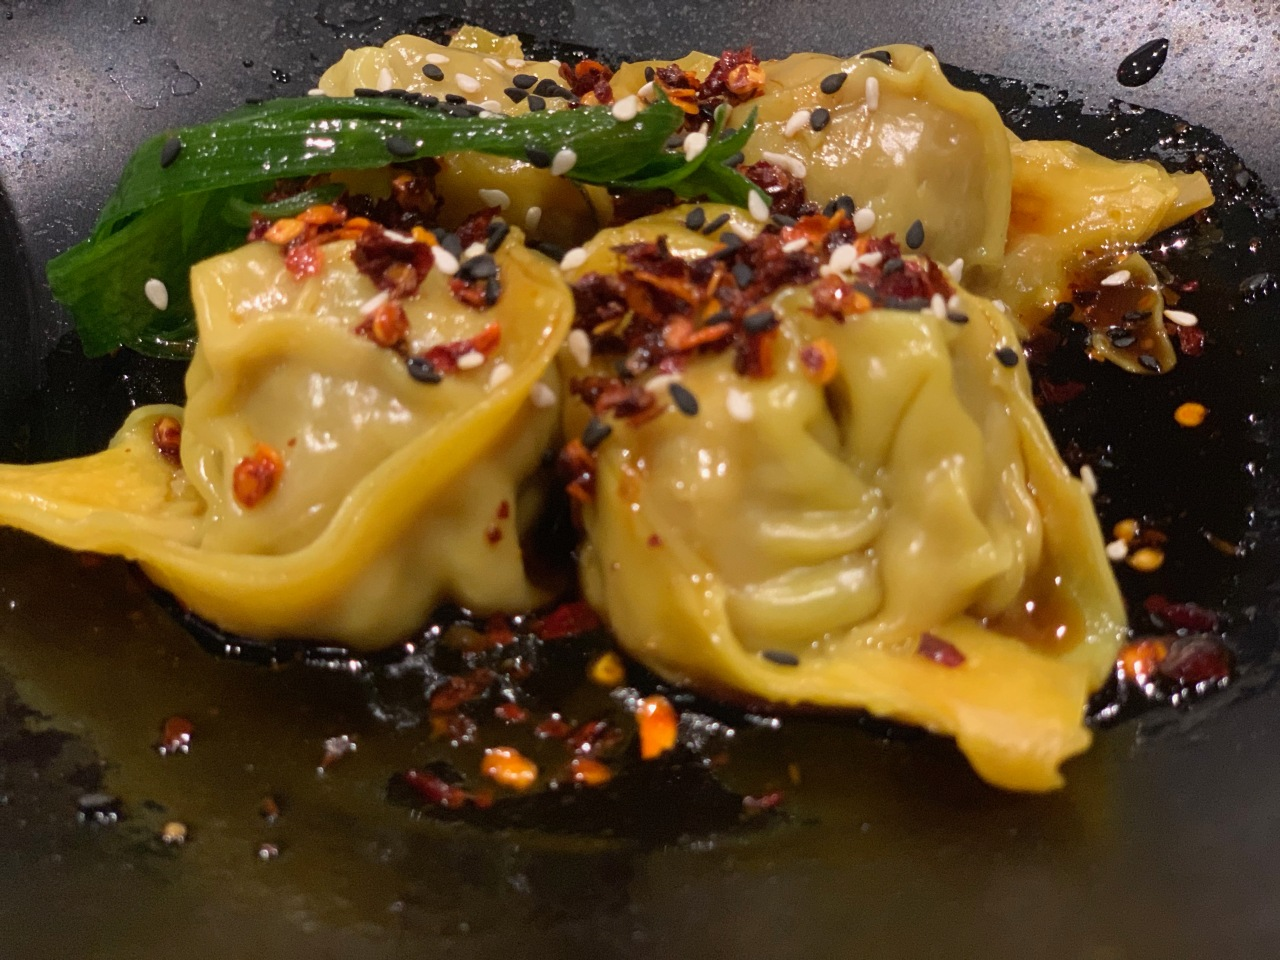 Dumpling lovers read on for what's hot in Melbourne.